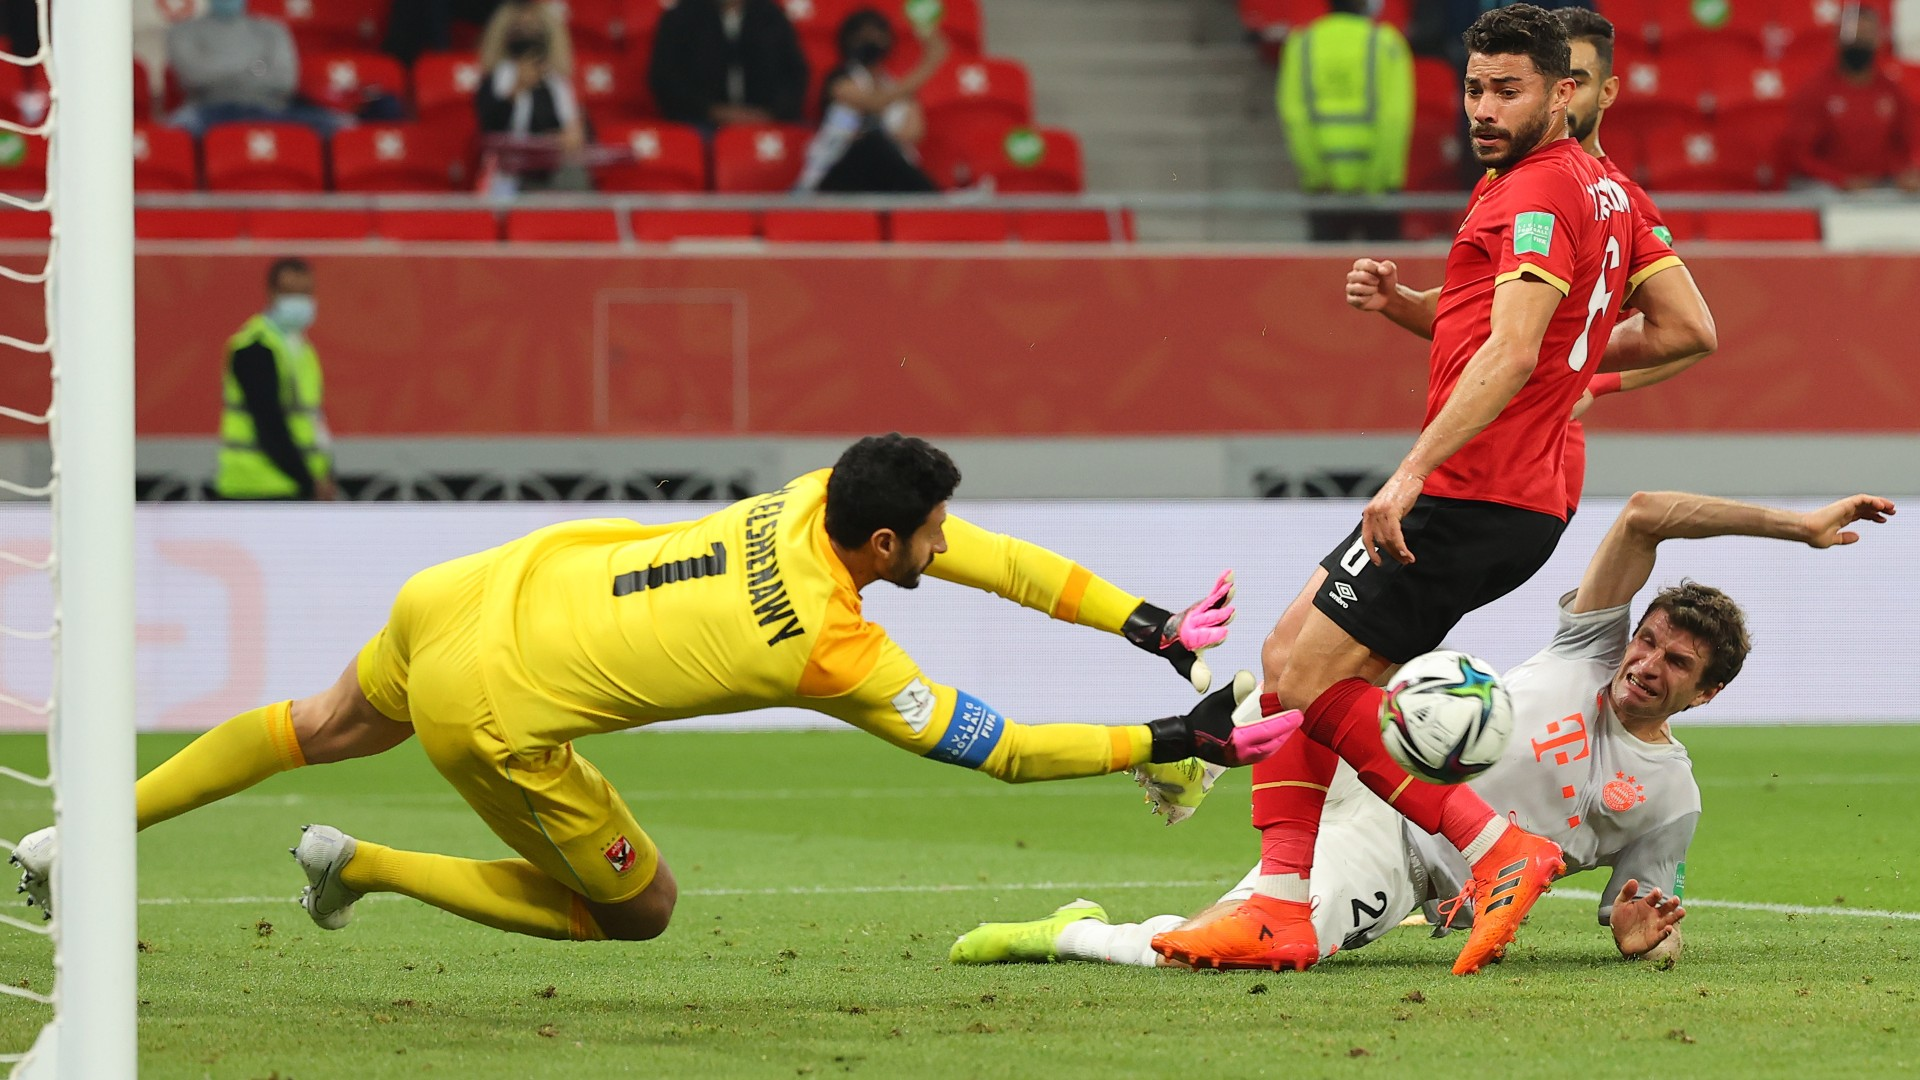 Caf Champions League: Al Ahly understand quality of Esperance de Tunis and 'we must win' – El Shenawy